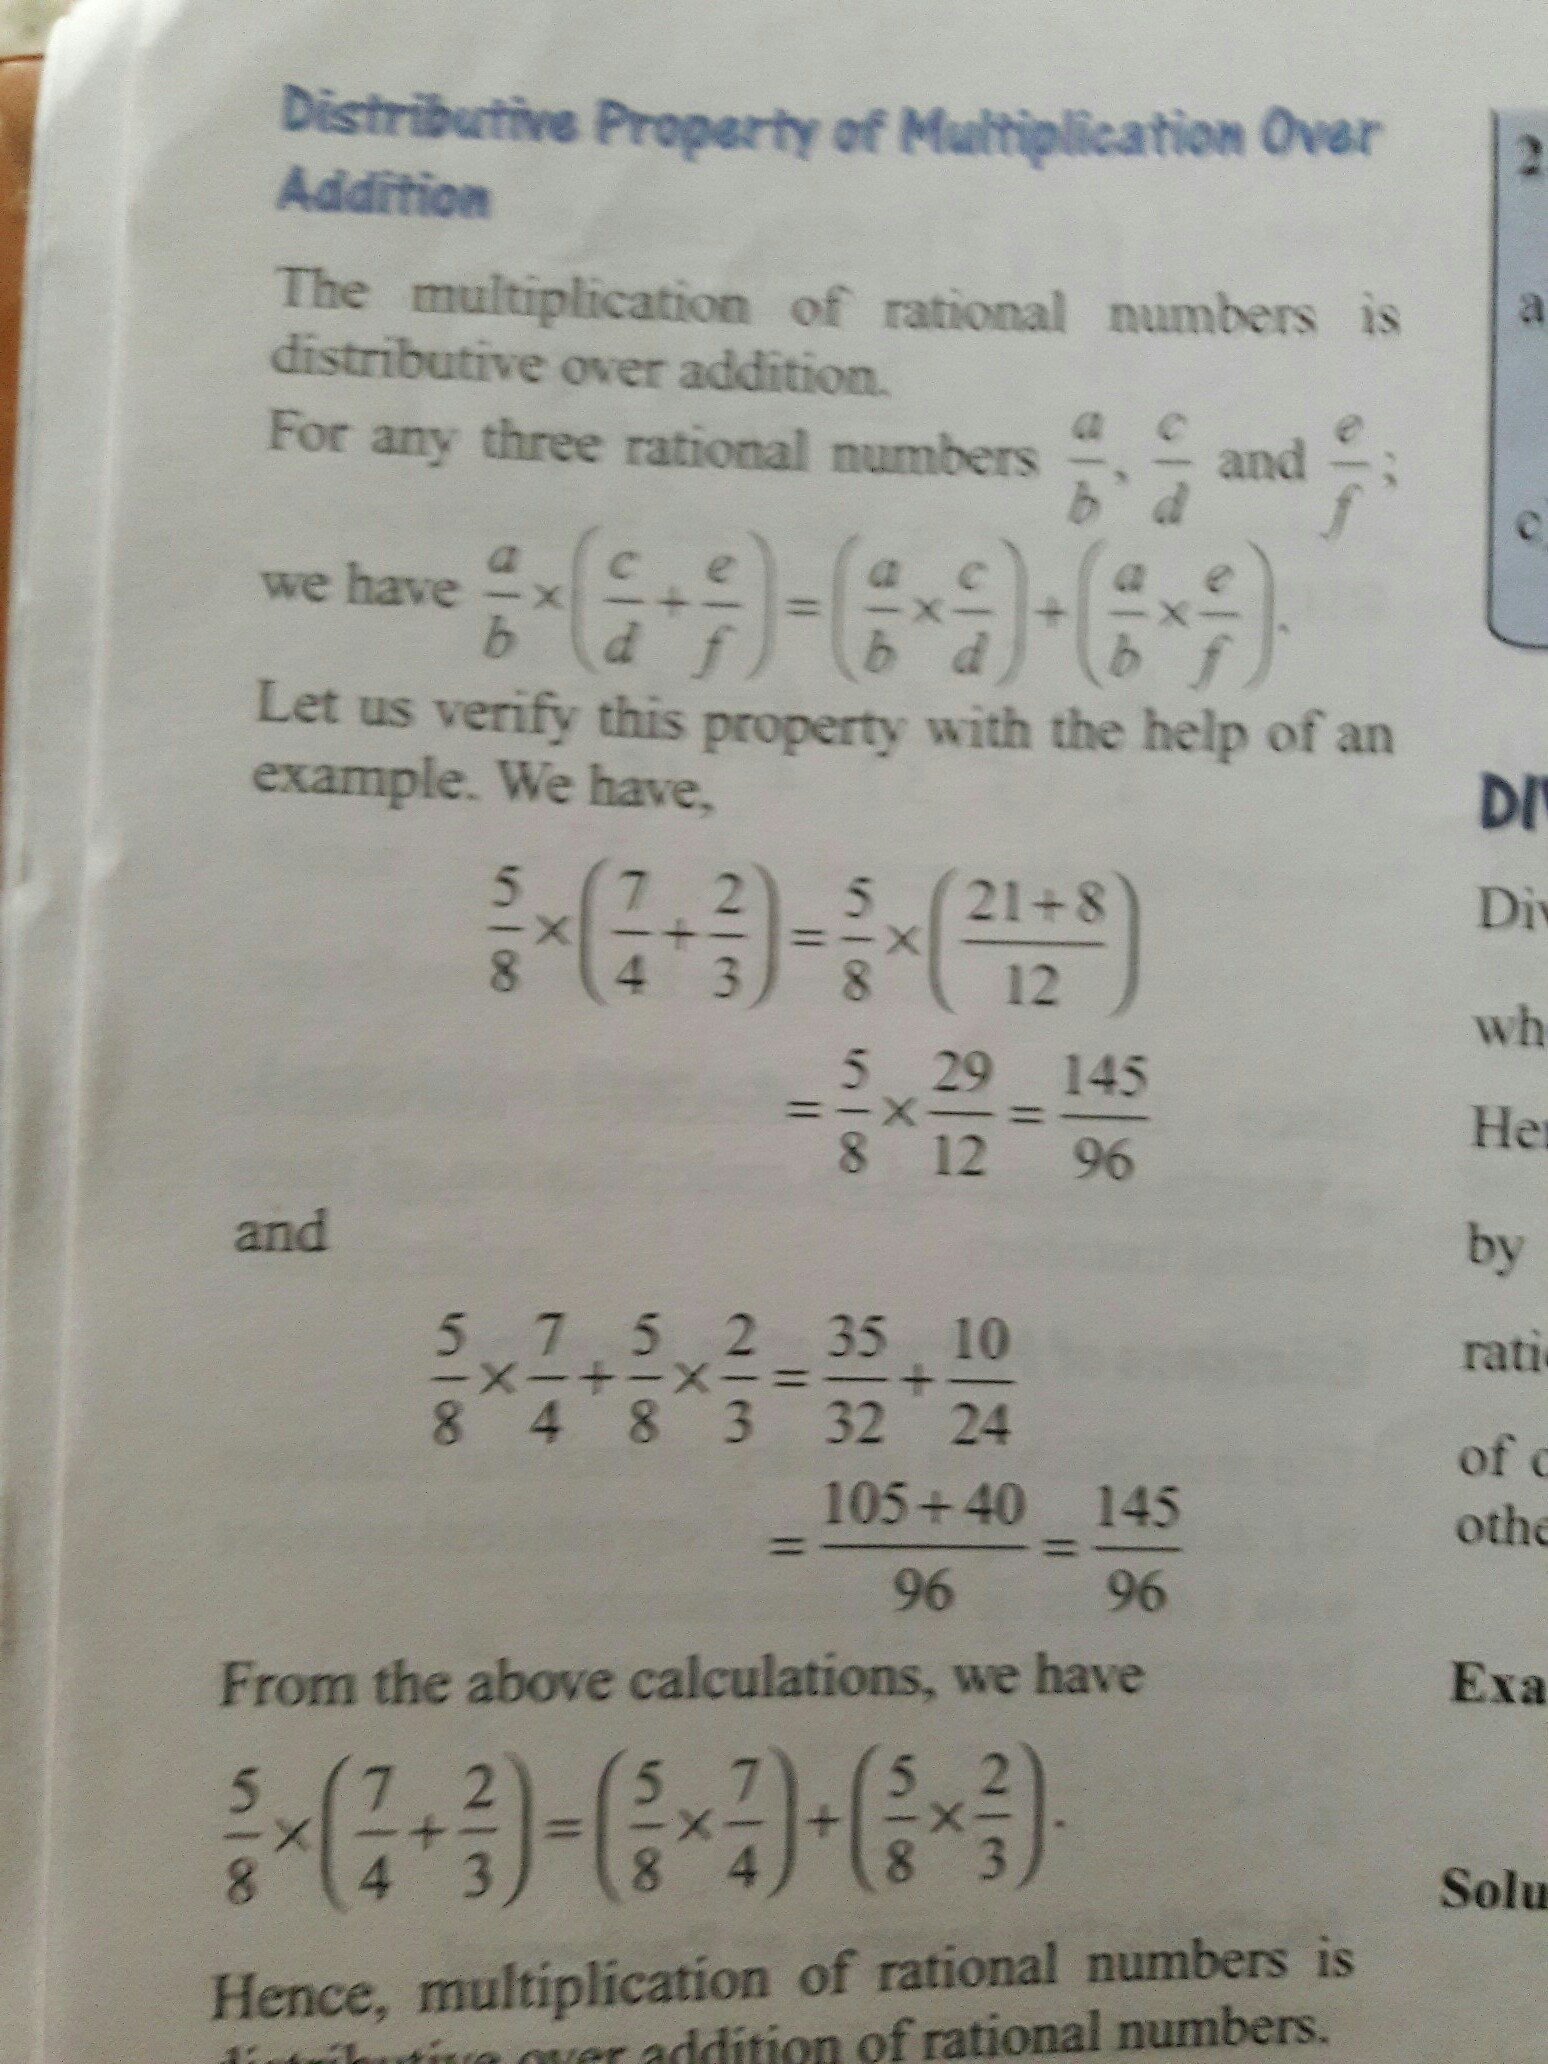 Distributive property of Multiplication over Addition